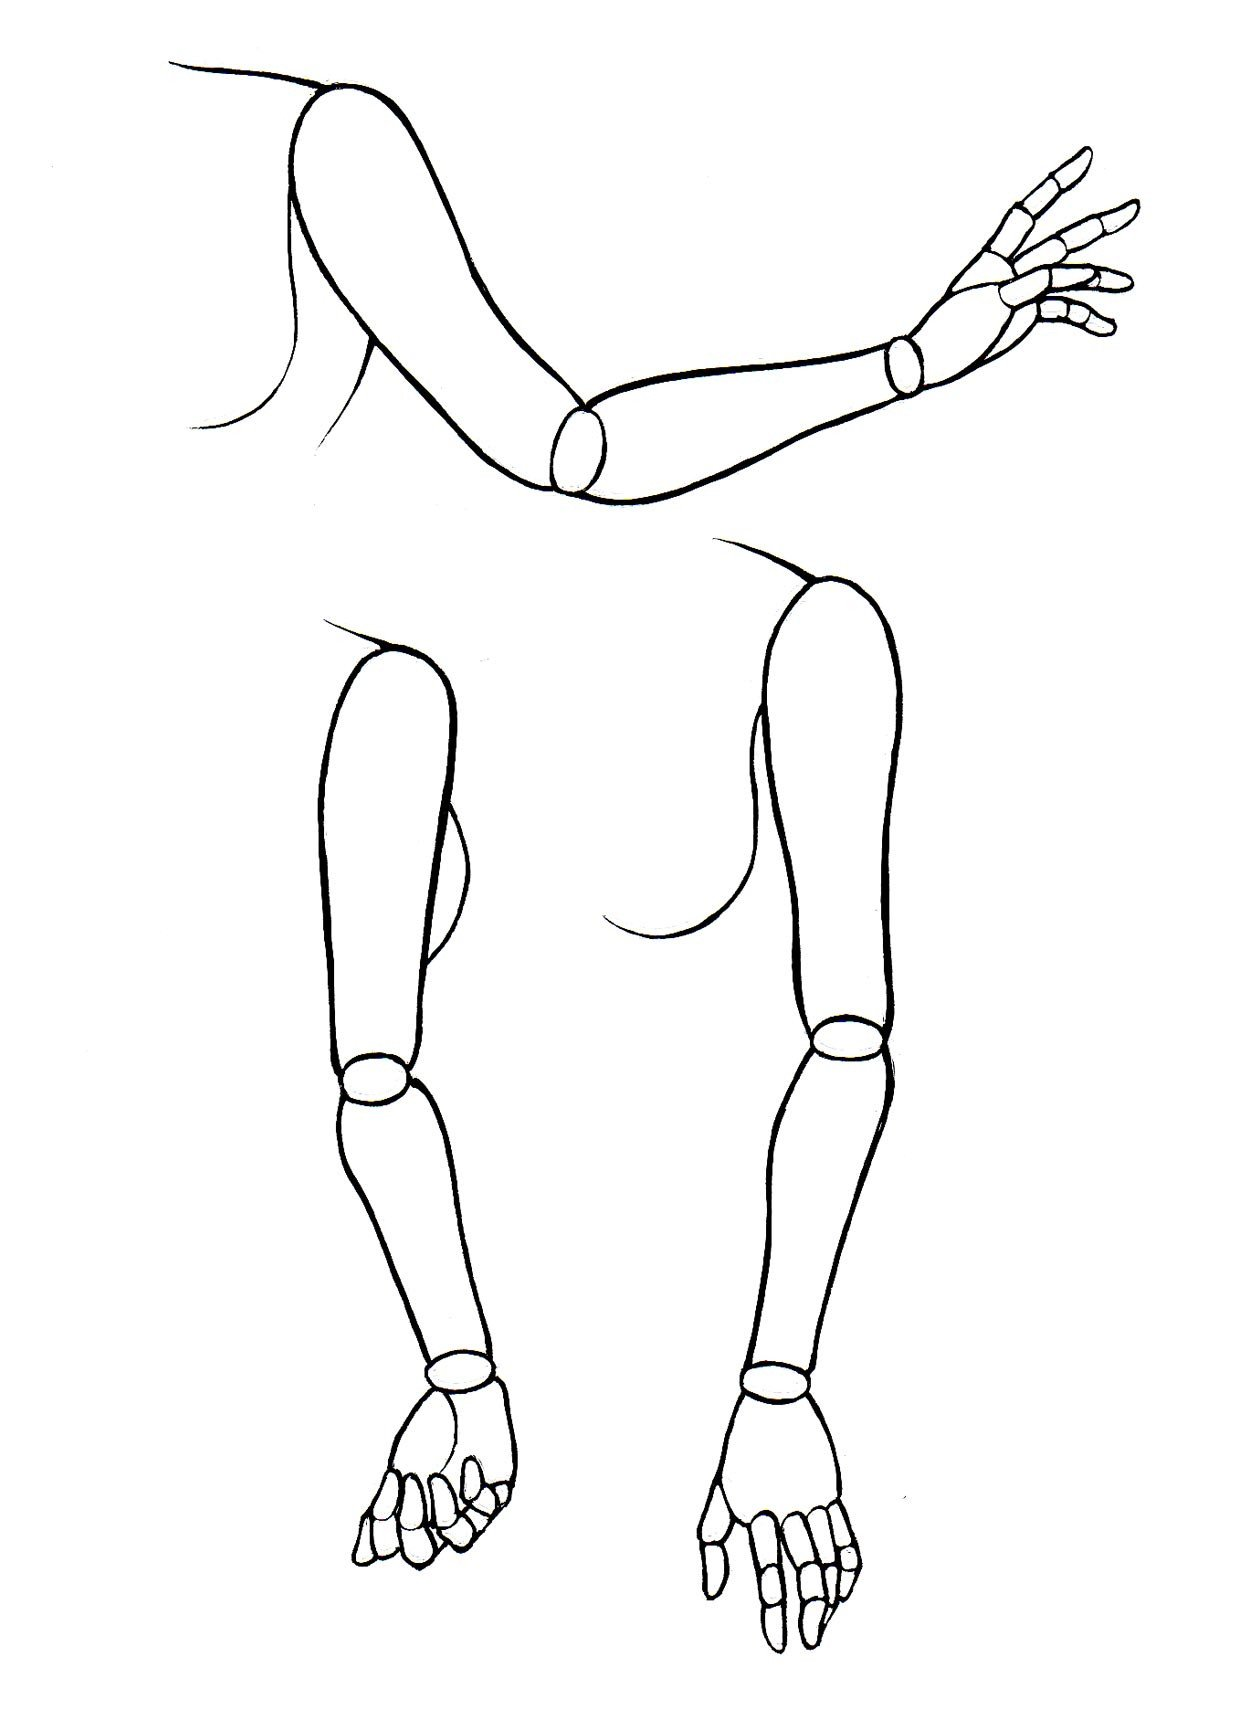 1242x1710 How To Draw Manga Bodies (Part 2) Manga University Campus Store